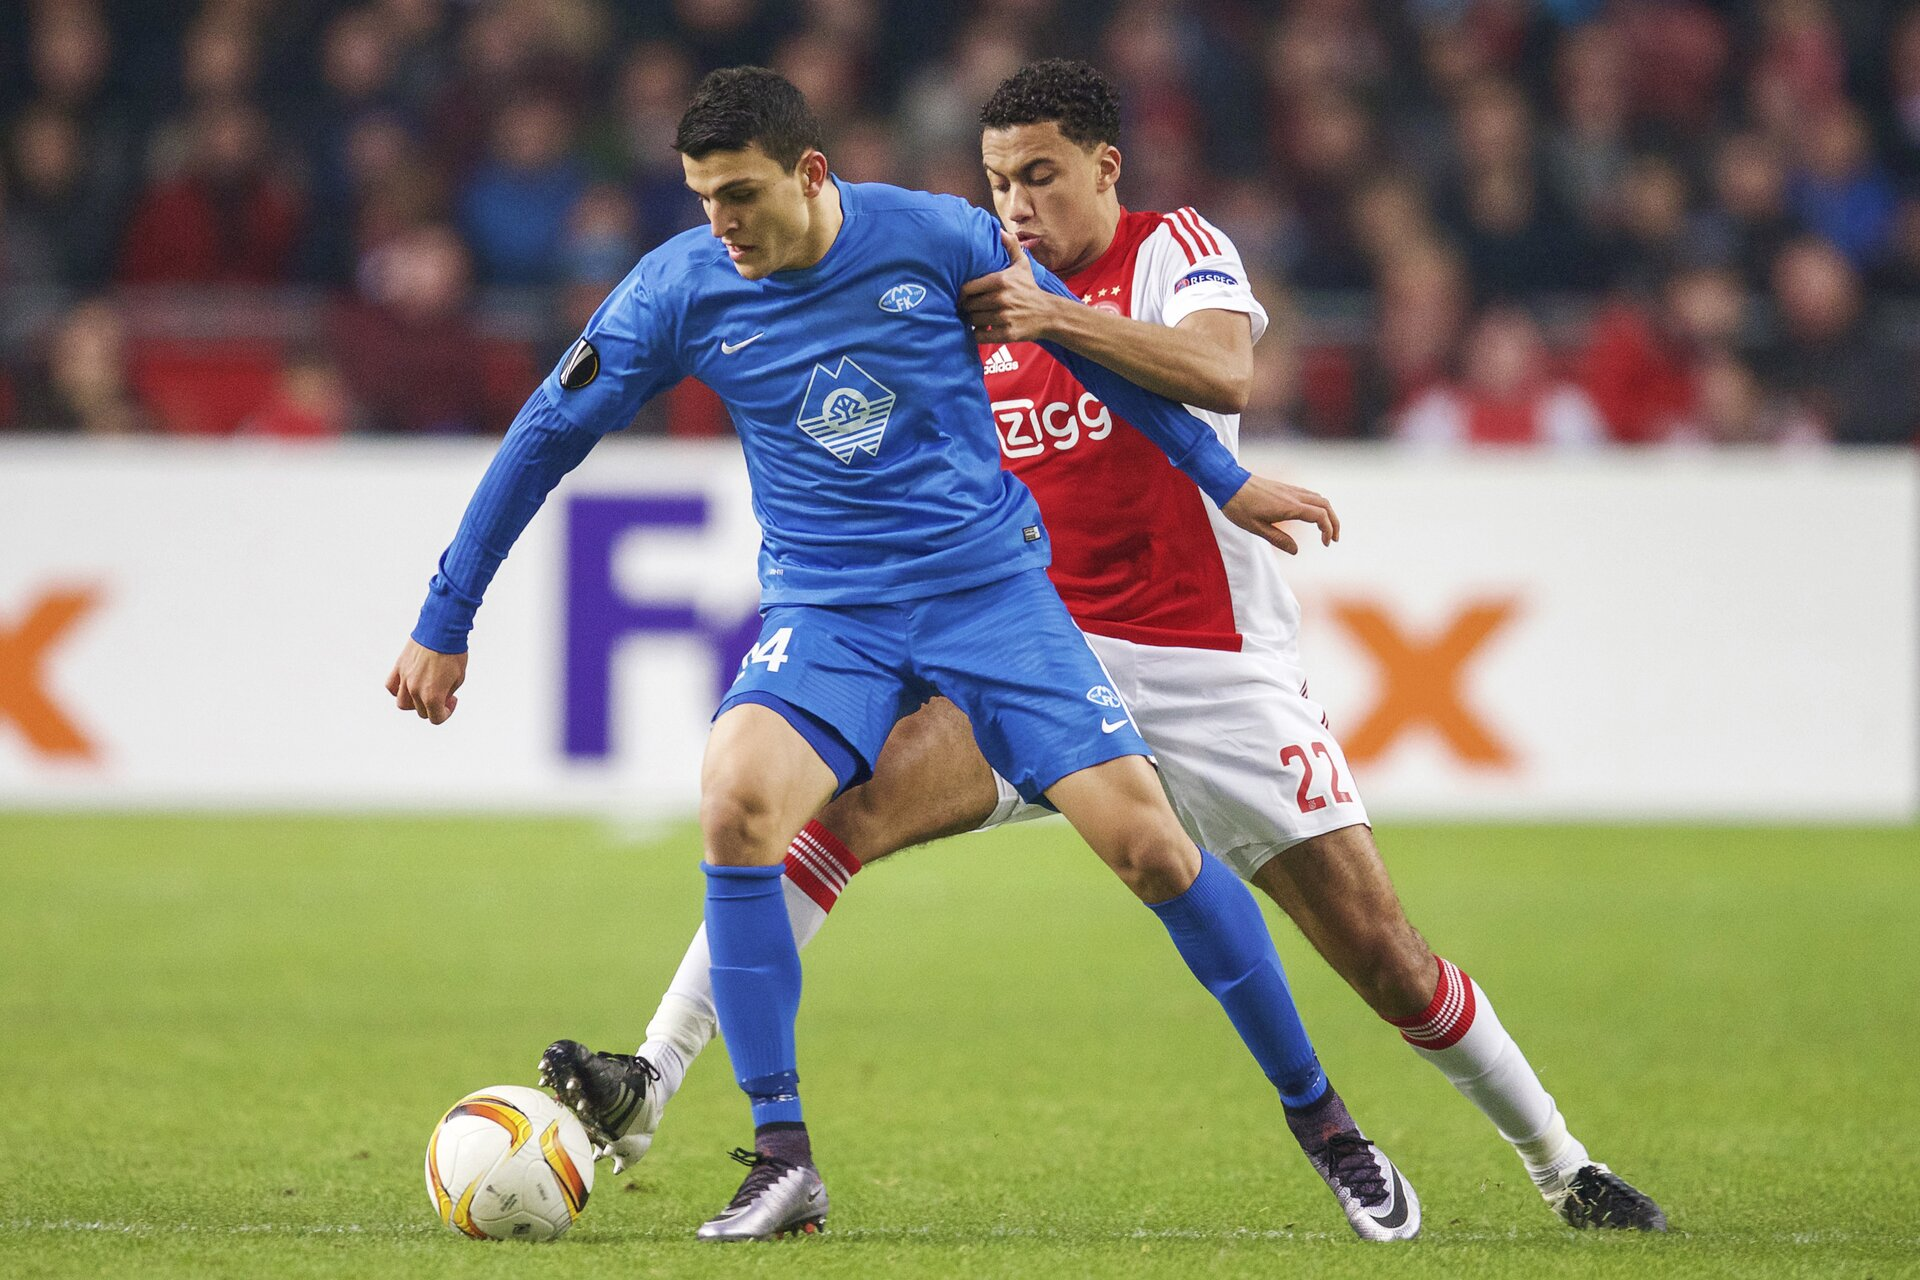 (L-R) Mohamed Elyounoussi of Molde FK, Jairo Riedewald of Ajax during the UEFA Europa League match between Ajax Amsterdam and Molde FK on December 10, 2015 at the Amsterdam Arena at Amsterdam, The Netherlands.(Photo by VI Images via Getty Images)